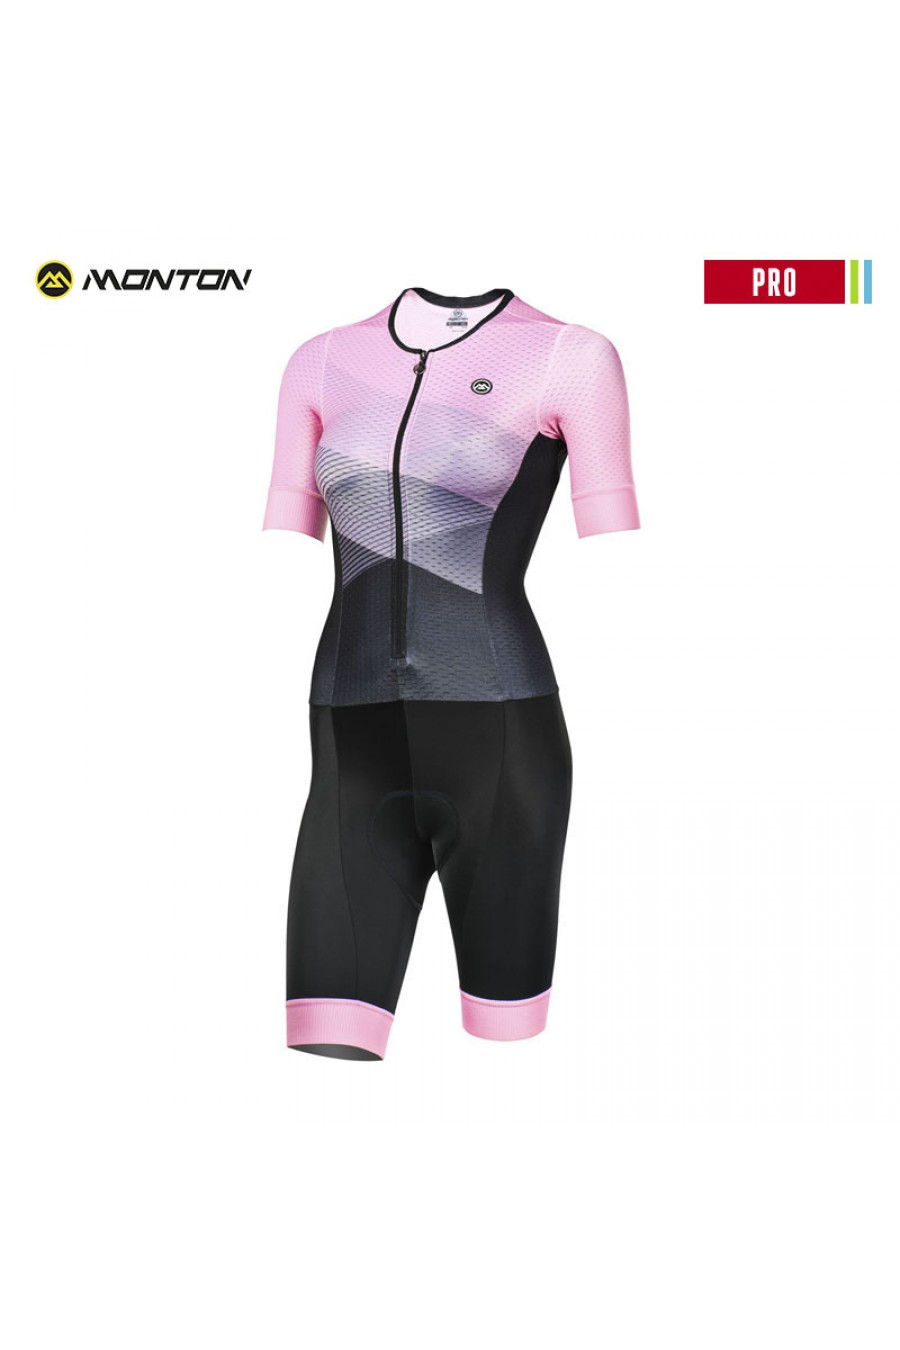 Buy Cool Design Women s Cycling Speed Suit Online f32b2ad6d